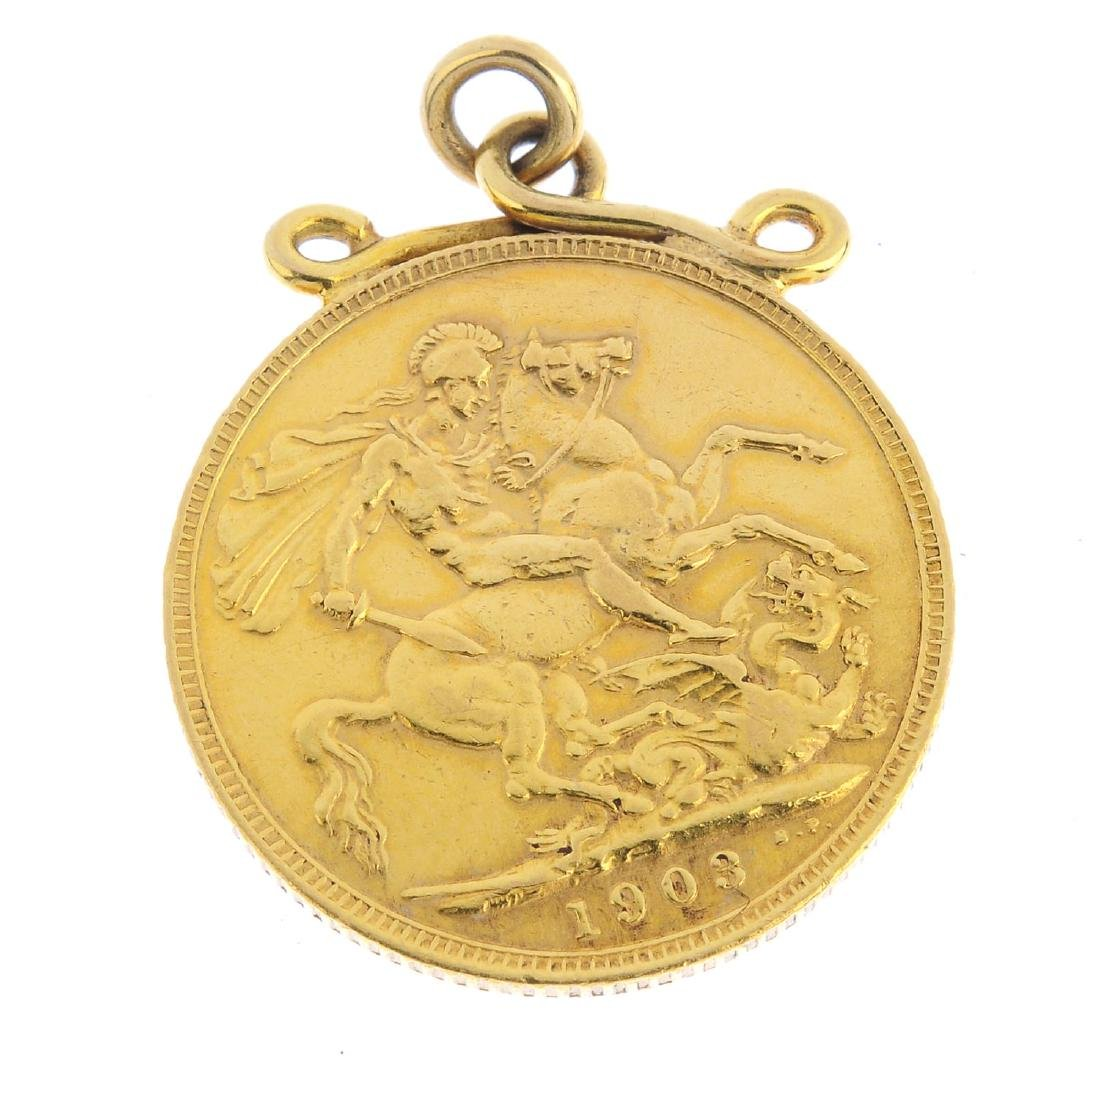 An Edward VII sovereign coin pendant. Dated 1903, with